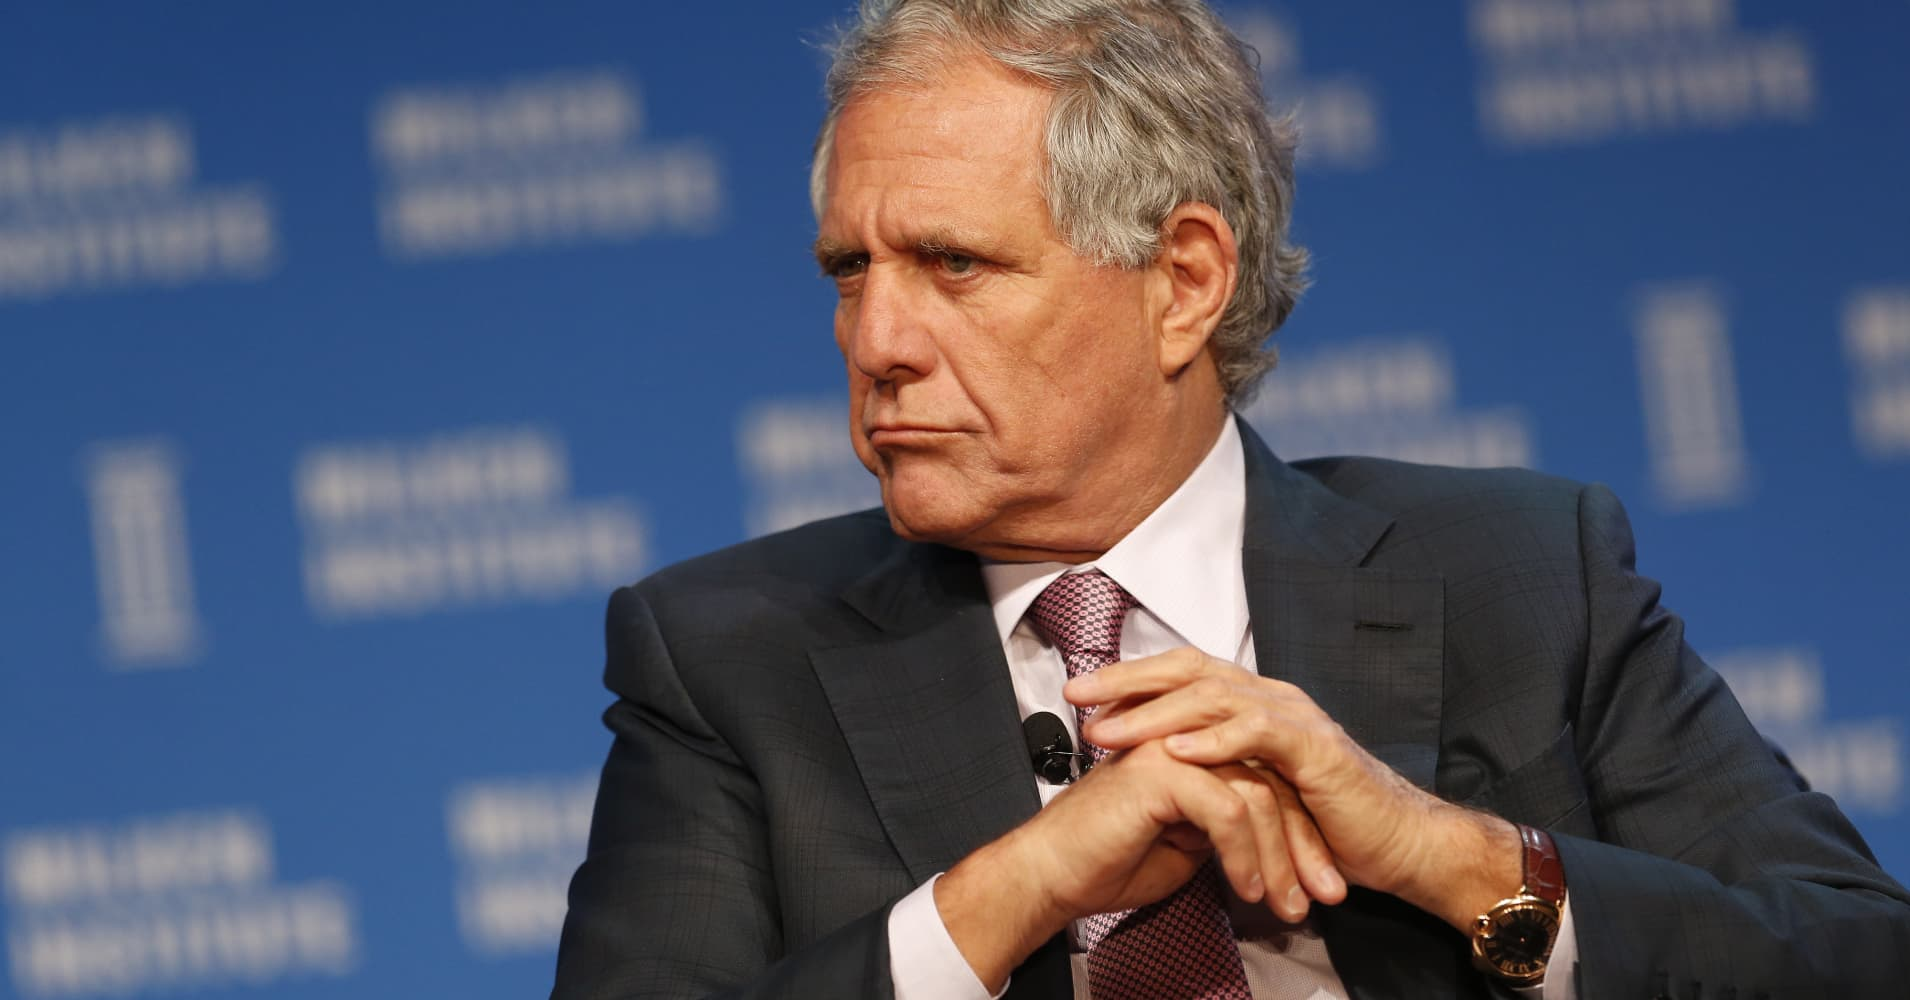 Leslie Moonves is going to arbitration with CBS over his $120 million exit package